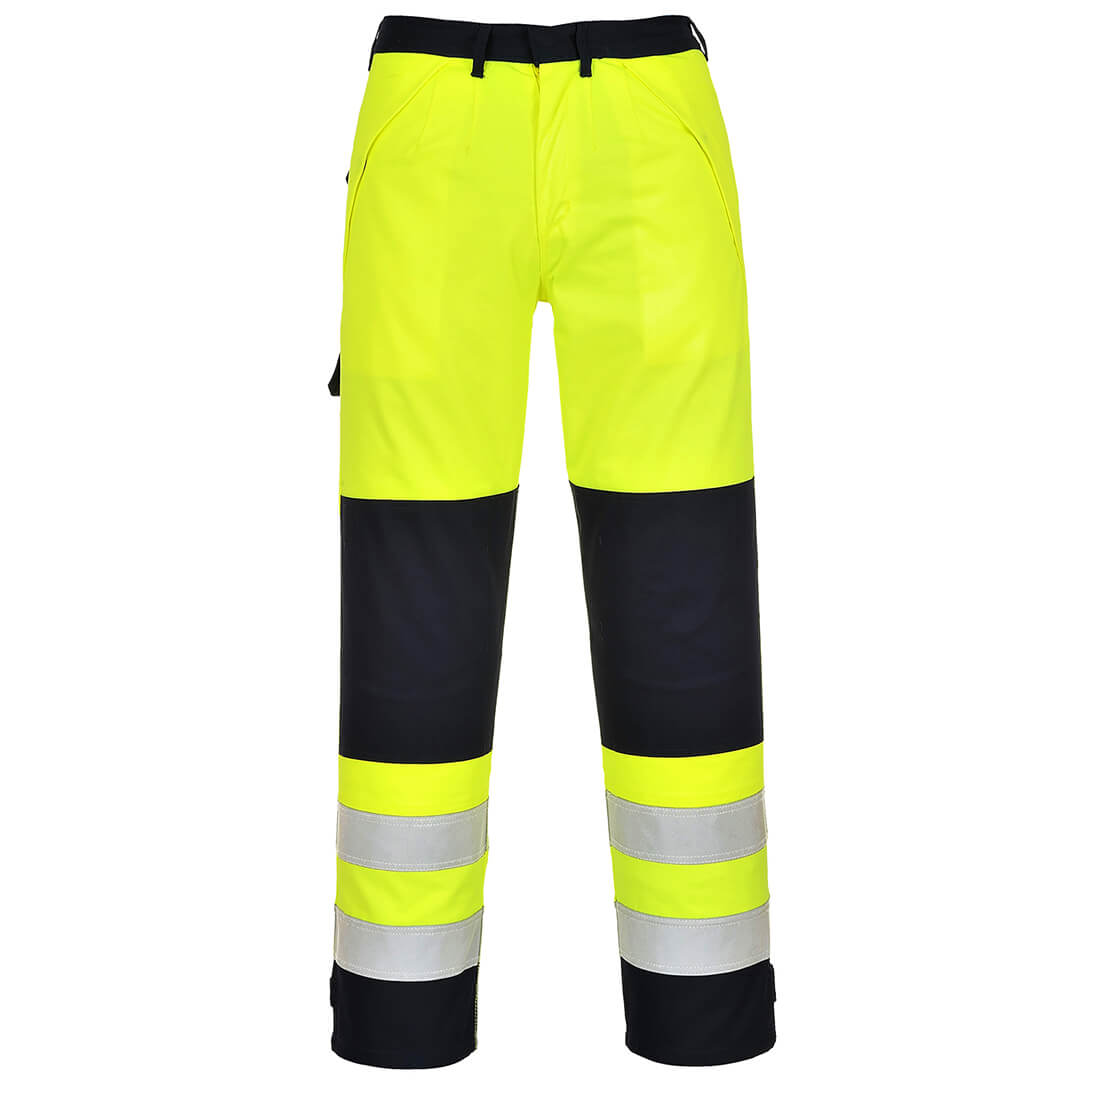 Image of Biz Flame Hi-Vis Multi-Norm Flame Resistant Trousers Yellow / Navy 2XL